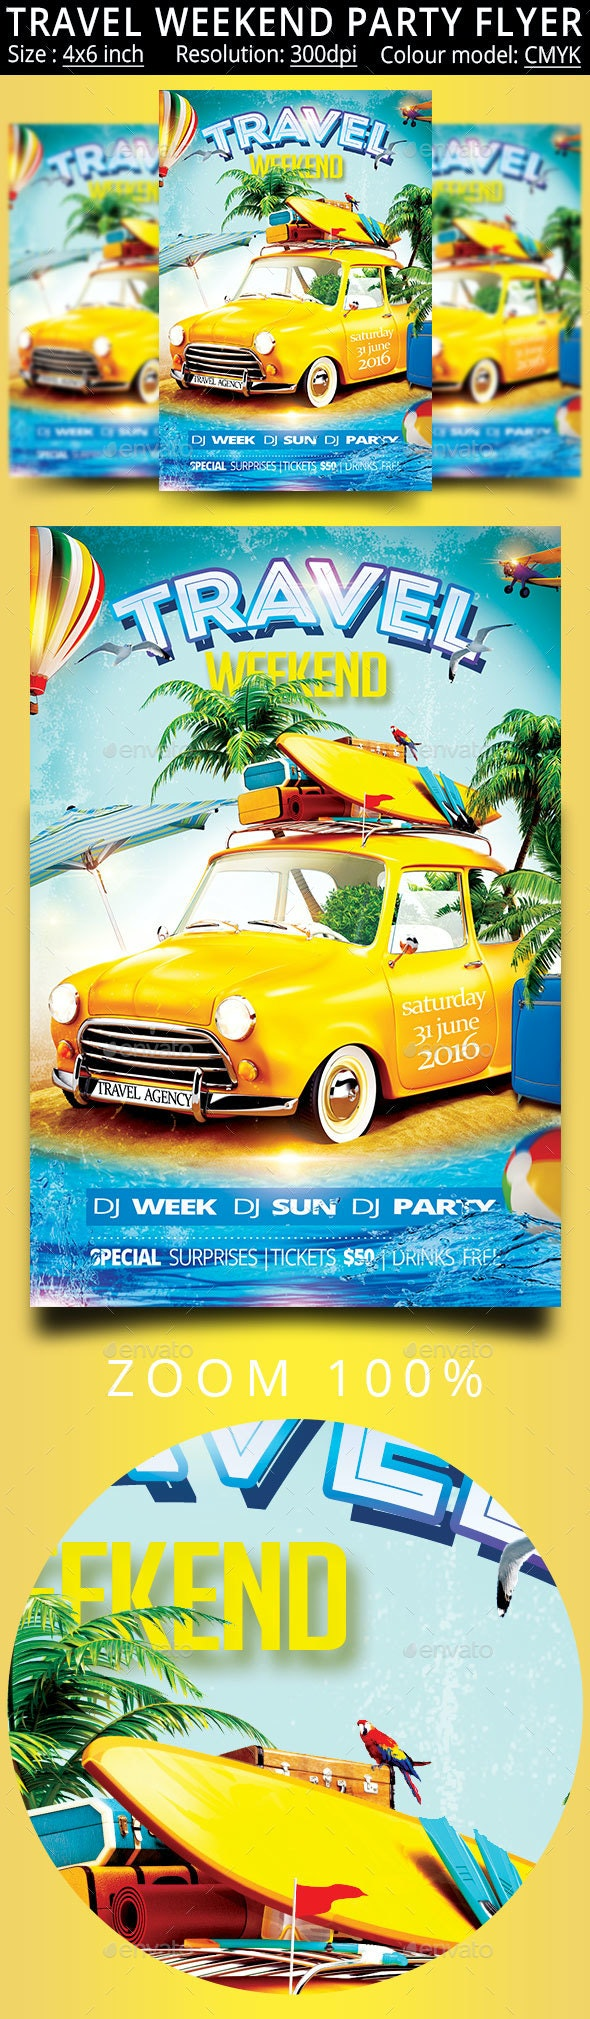 Travel Weekend - Events Flyers